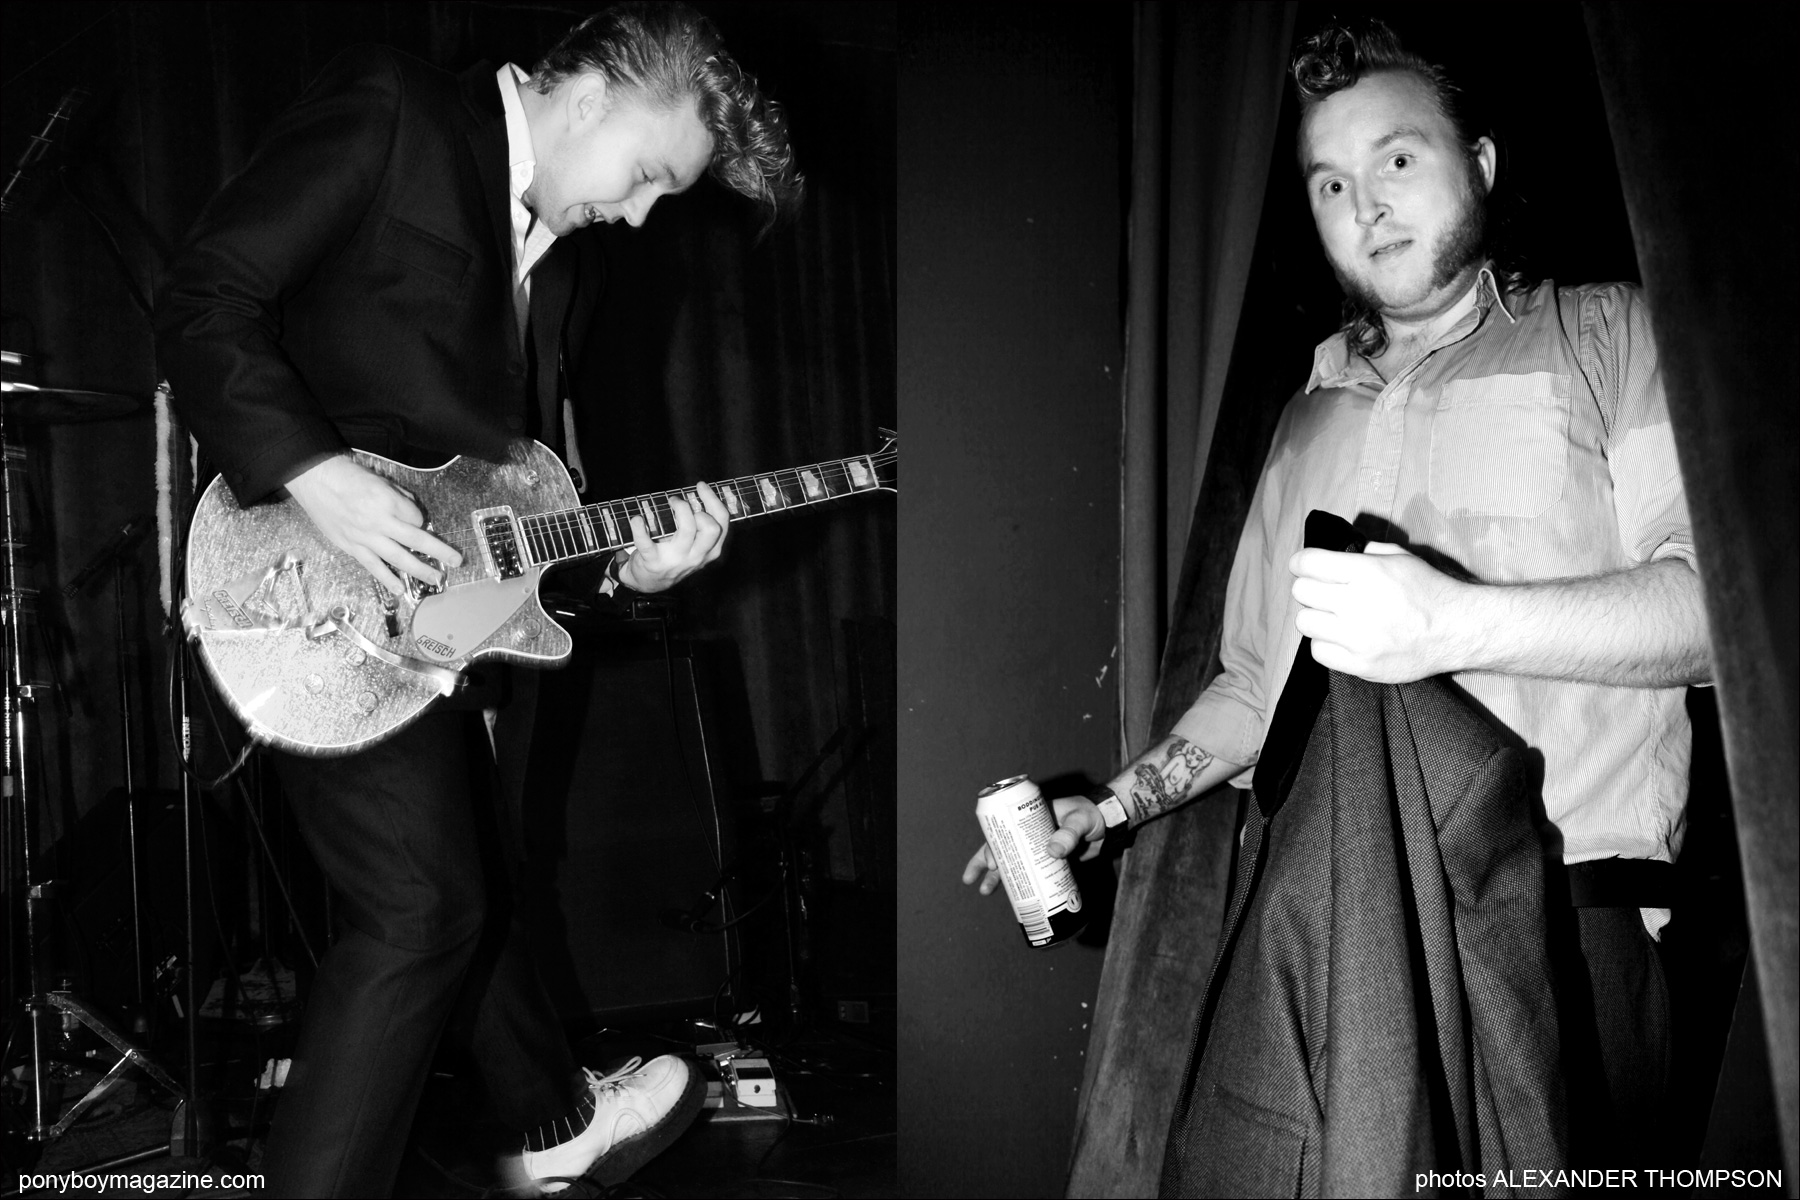 Alexander Thompson photographs of teddy boy band Furious, on stage in New York City. Photographed for Ponyboy Magazine.